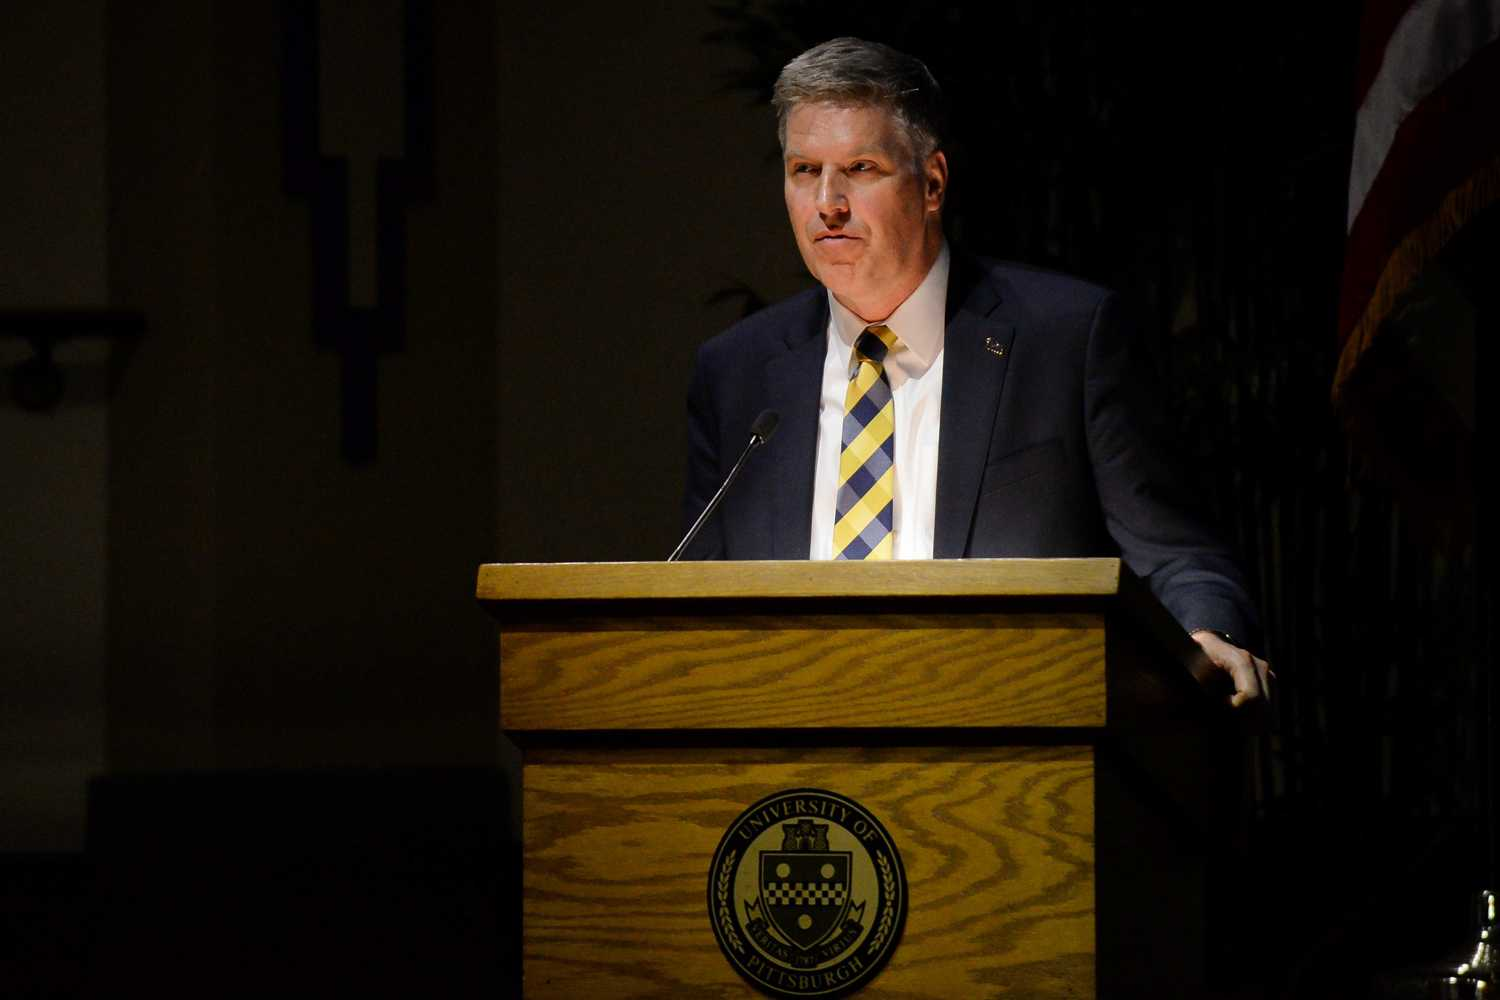 Chancellor Patrick Gallagher discusses the proposed changes to the Pitt-Titusville campus the Board of Trustees meeting Friday morning. (Photo by Christian Snyder | Multimedia Editor)